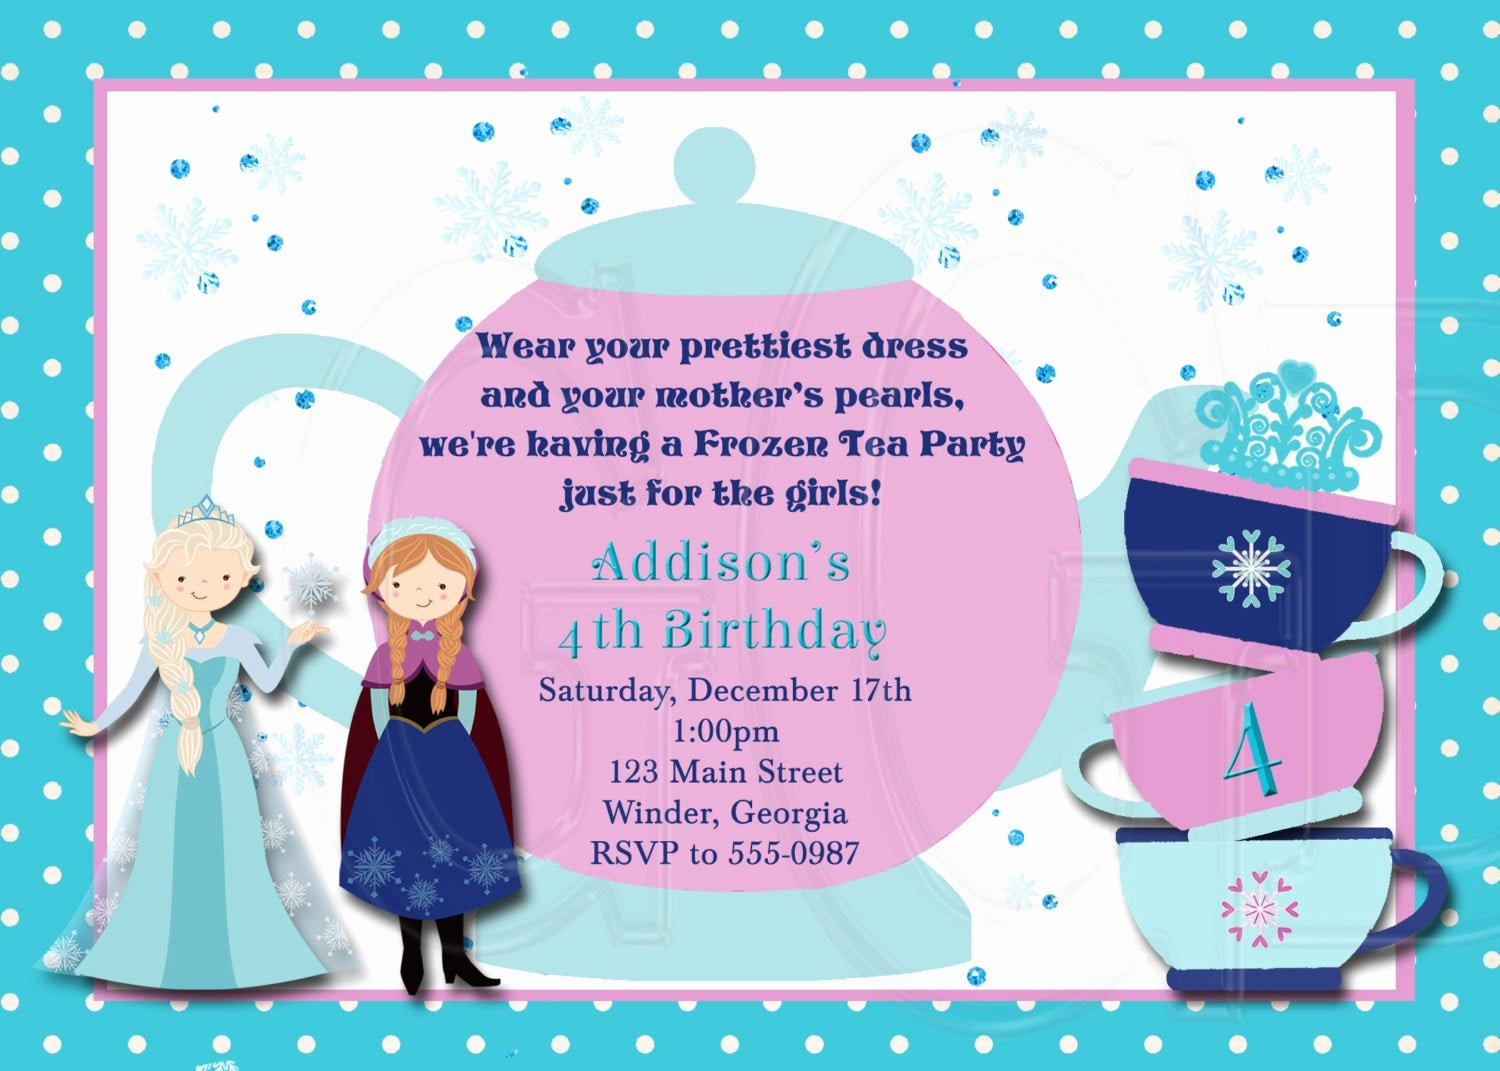 Princess Party Invitation Wording Unique Ice Princess Tea Party Invitation Birthday Digital File